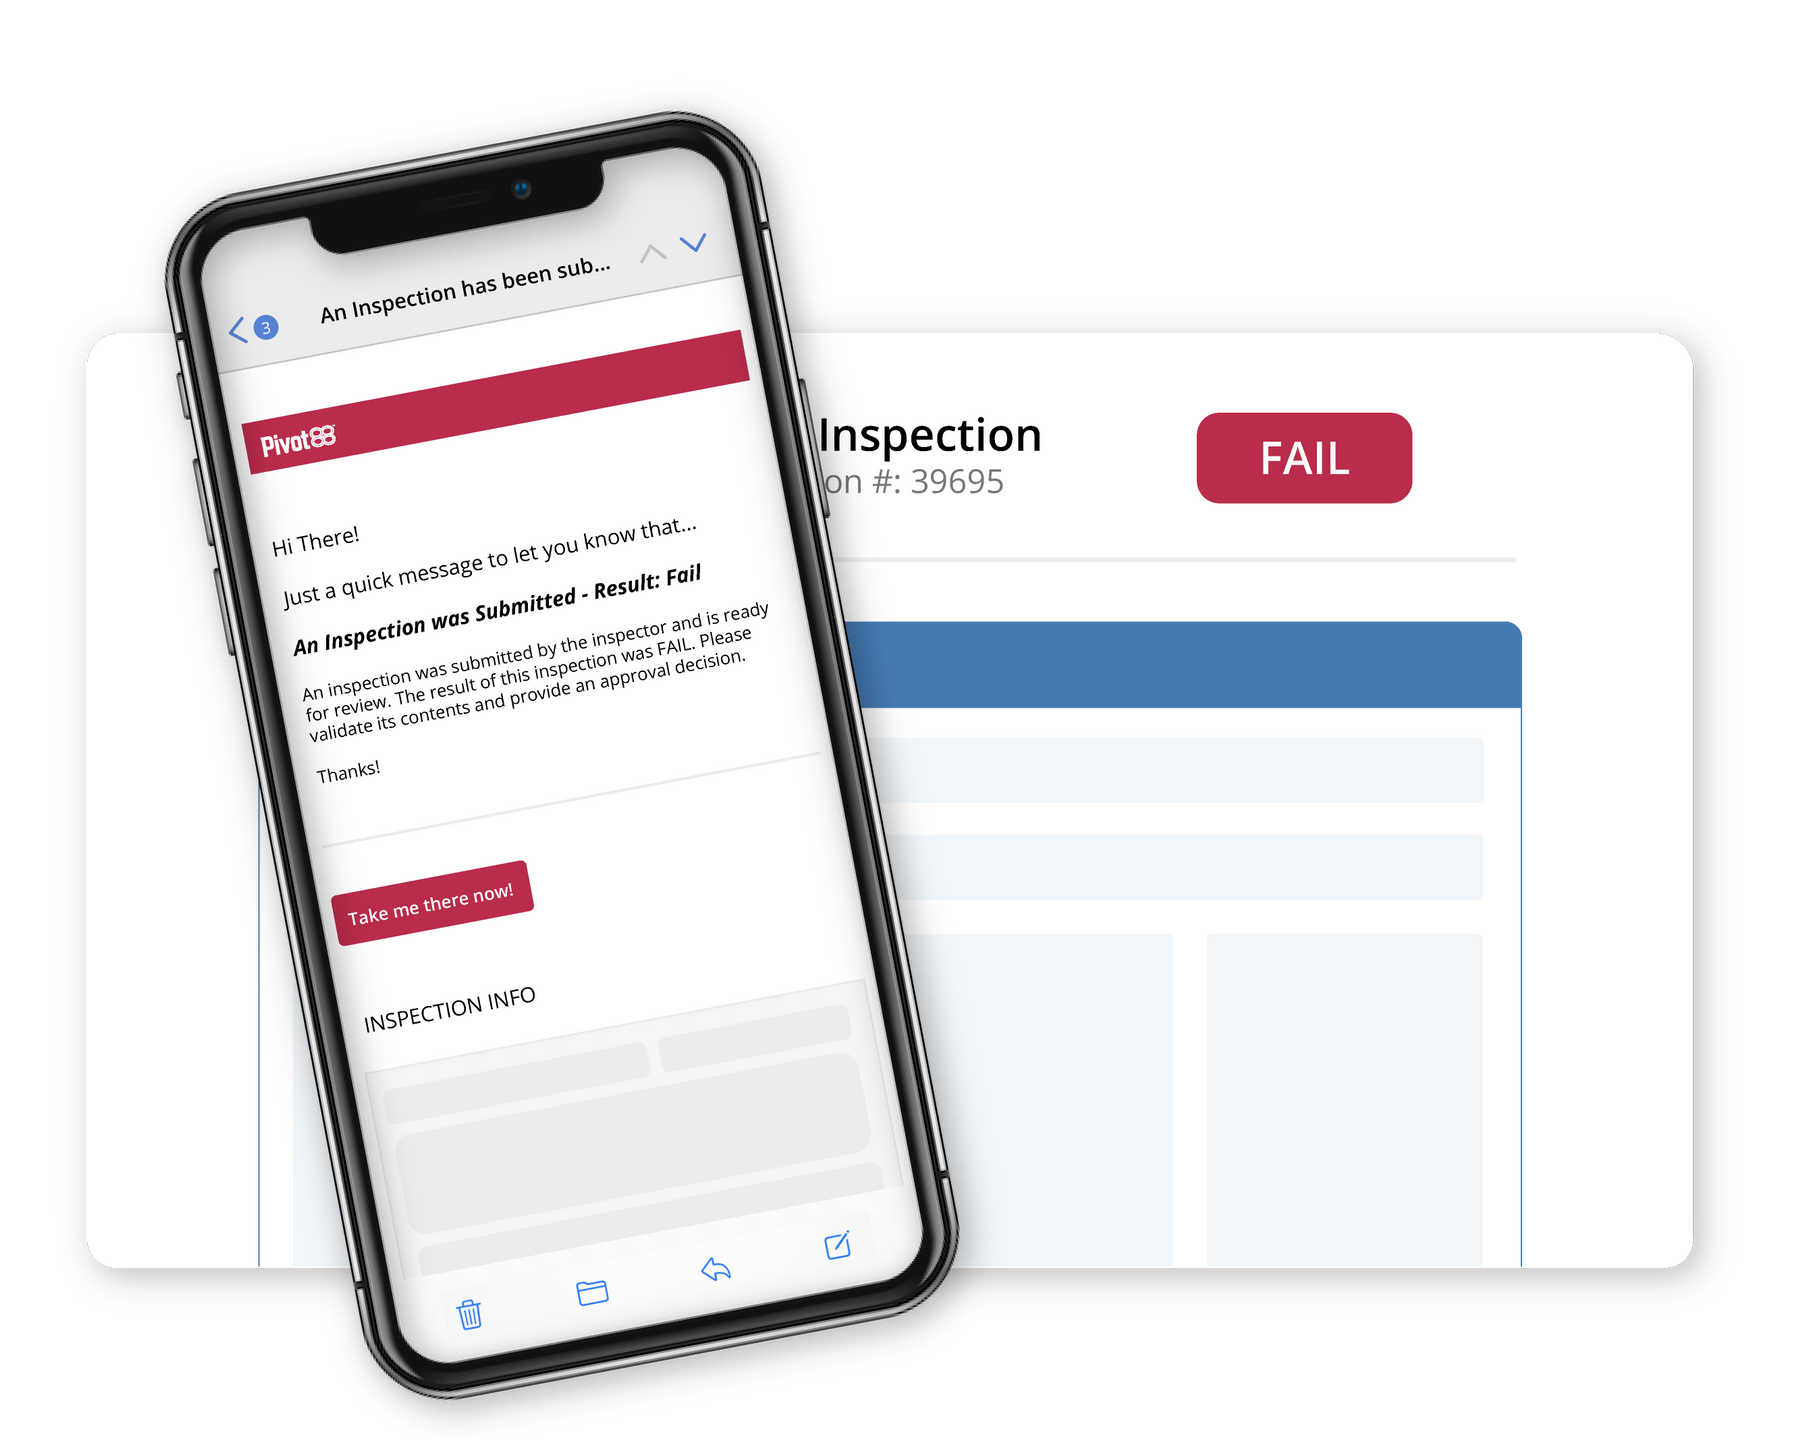 Collage failed inspection report with mobile device alert